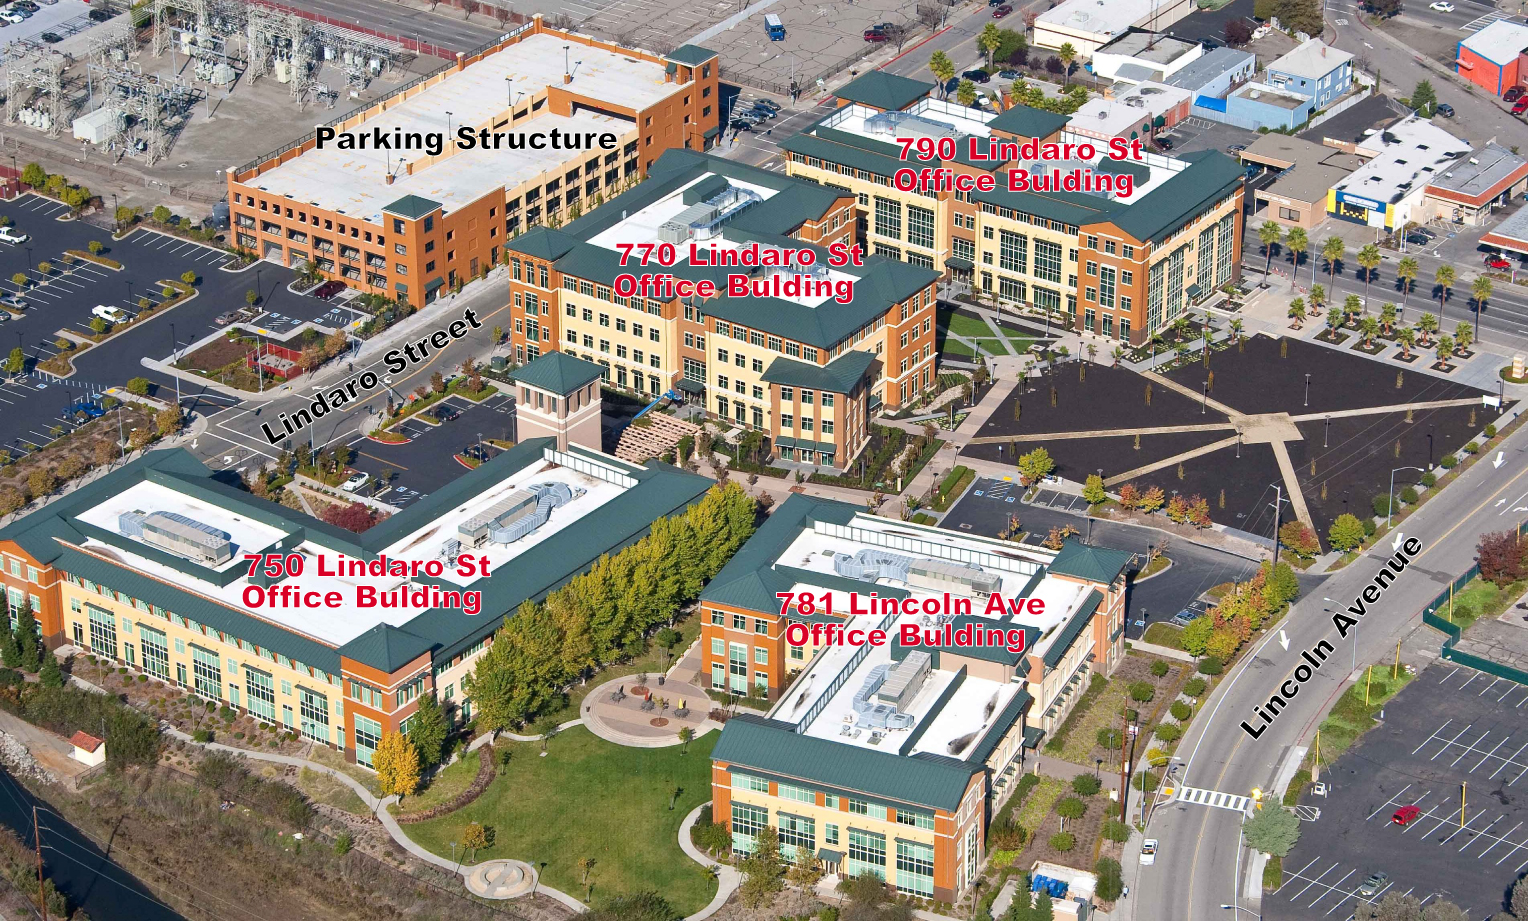 San Rafael Corporate Center - Seagate Properties